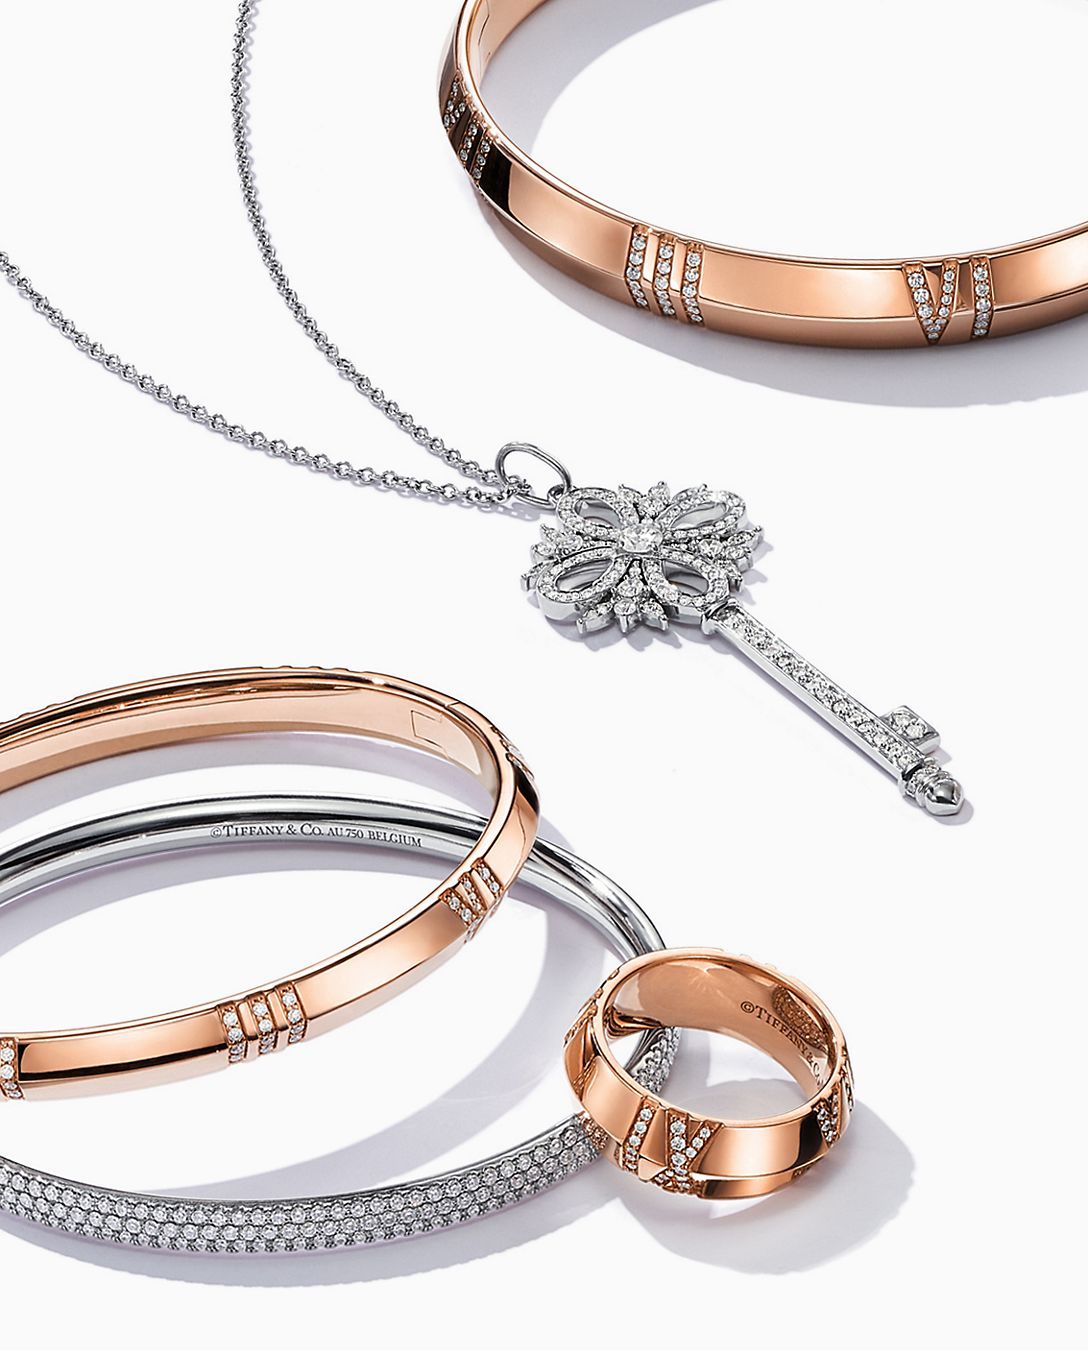 Shop Tiffany & Co. Gifts for Her